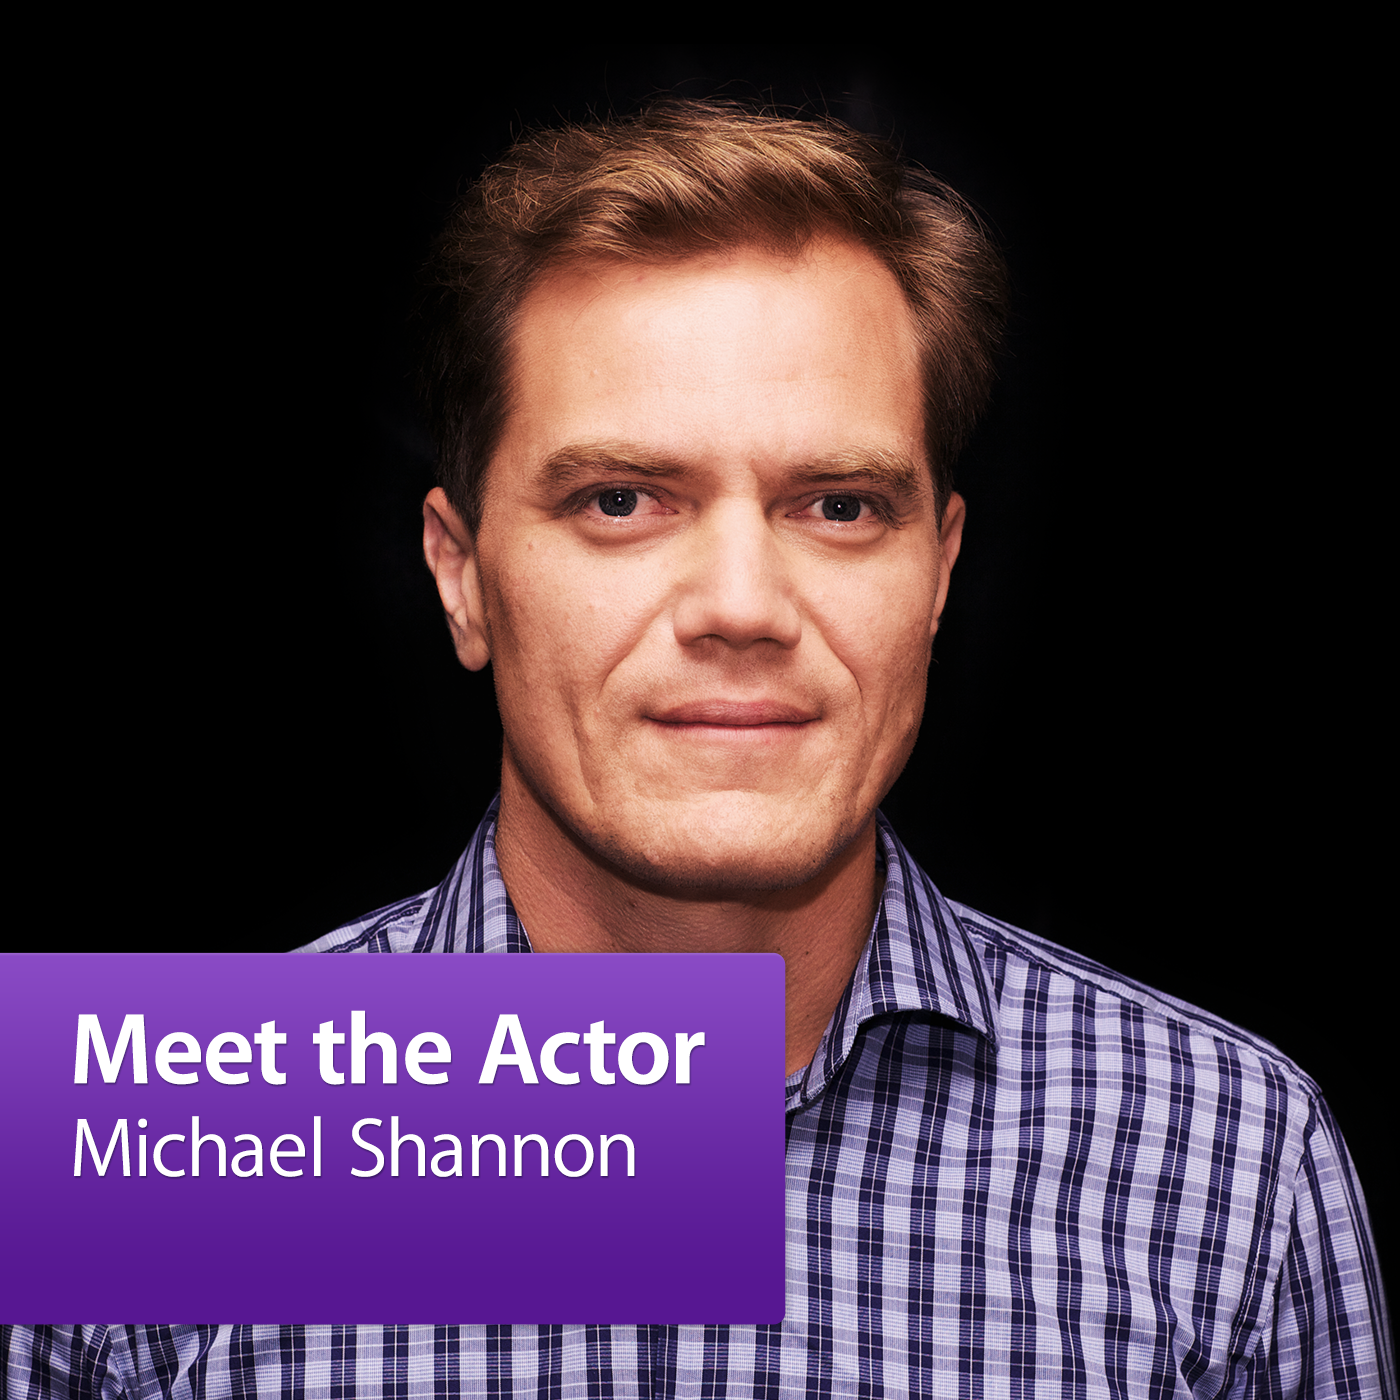 Michael Shannon: Meet the Actor